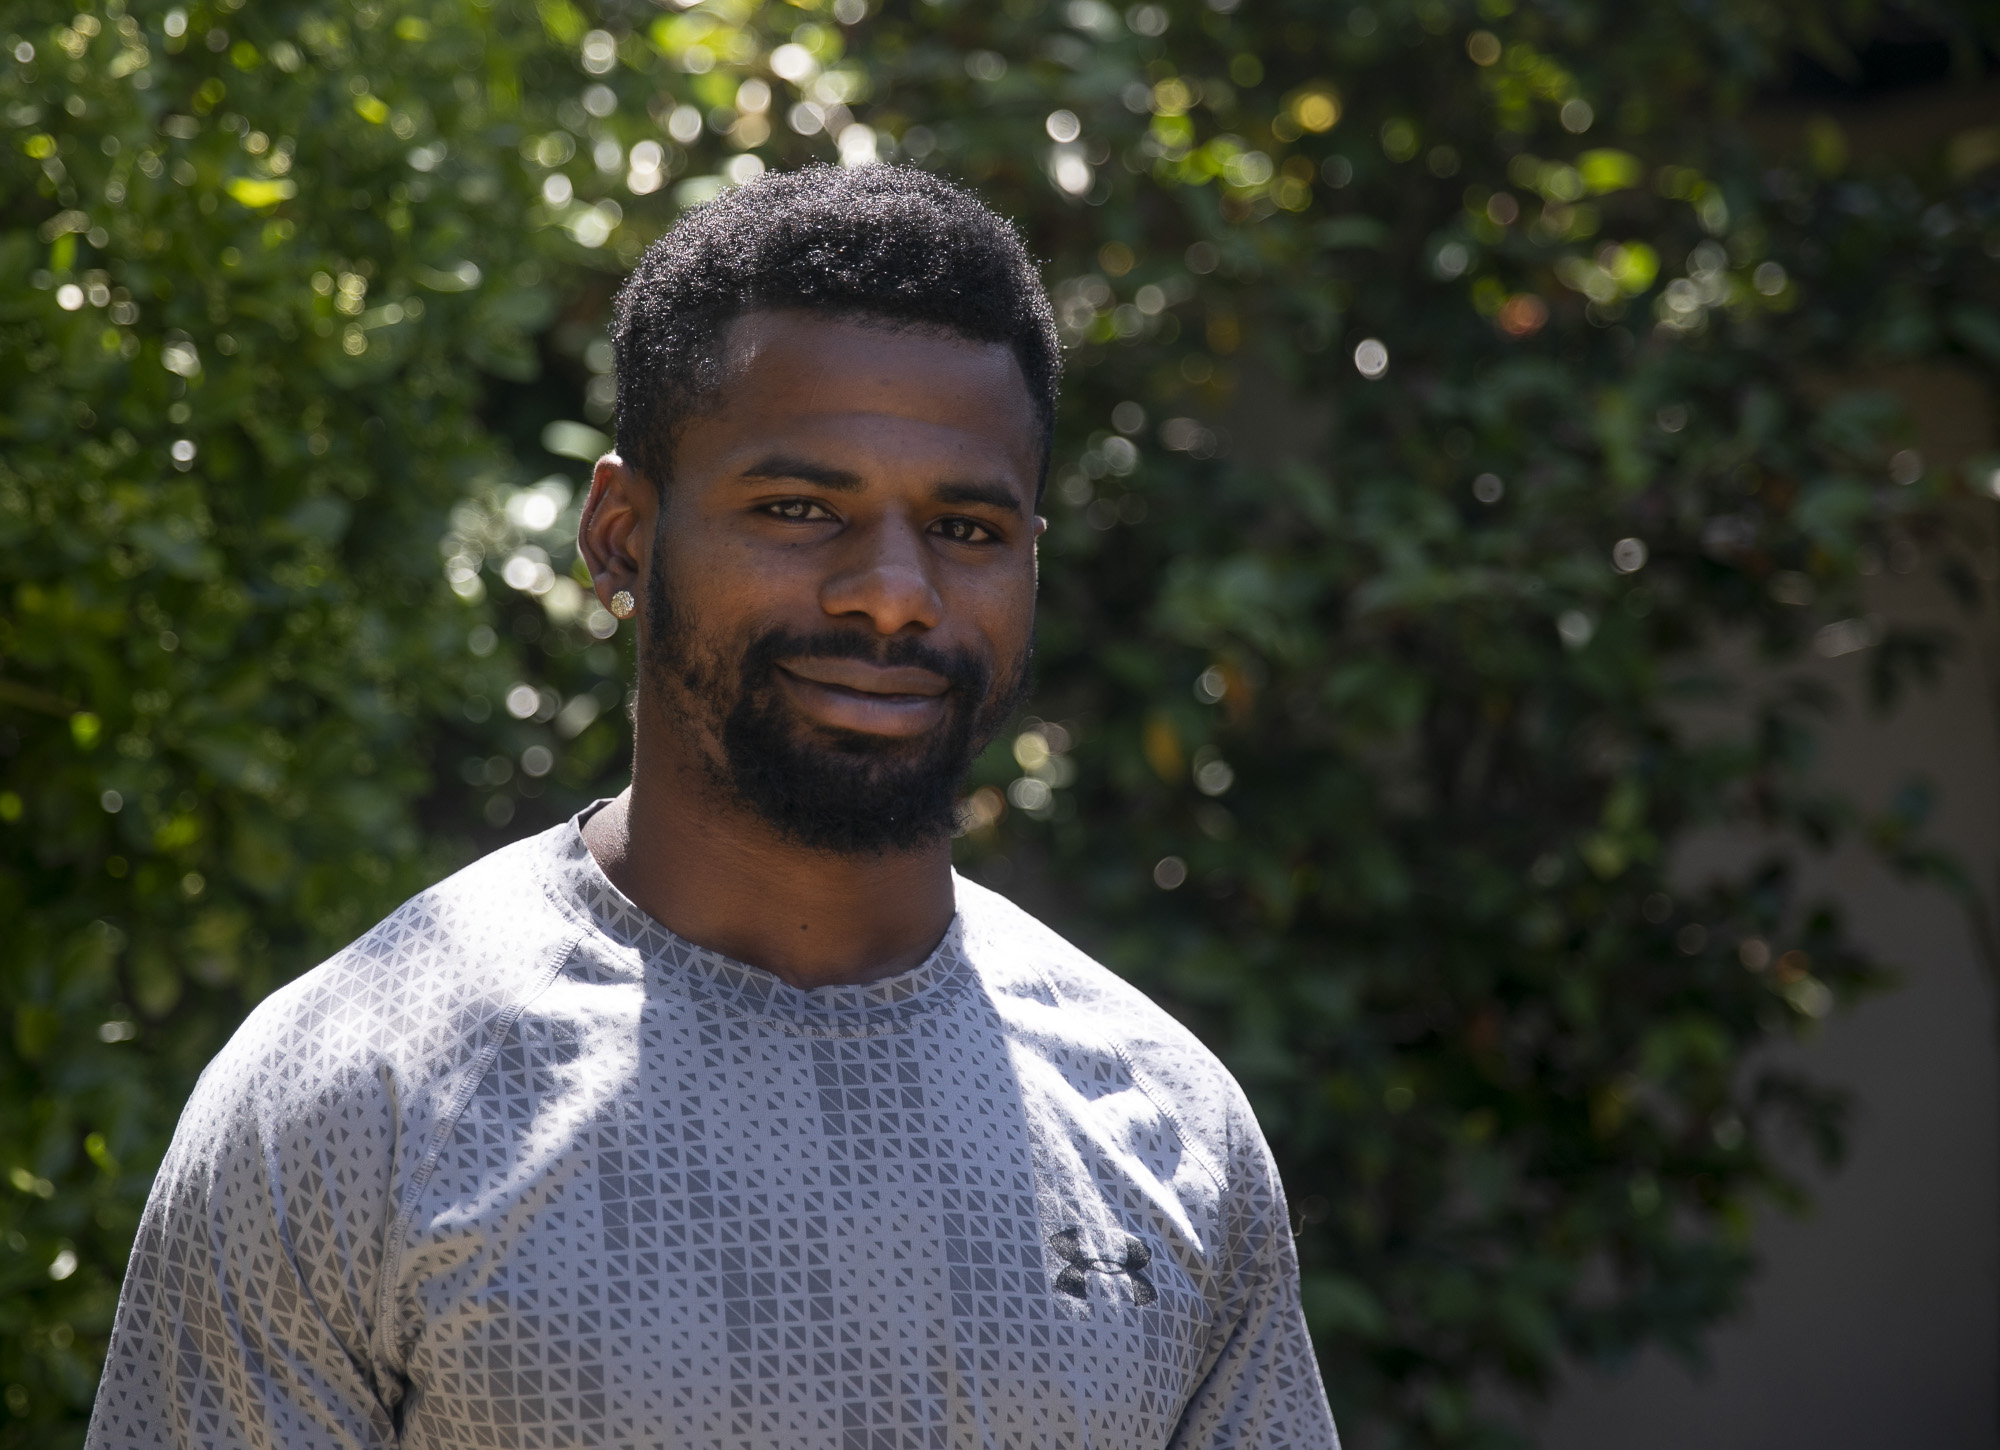 """Antonio Wellington was a ward at Pine Grove Fire Camp from 2015-17 and still serves as a mentor for current inmates. """"It's everything to me,"""" Wellington said of his experience at the camp. Photo by Anne Wernikoff for CalMatters"""